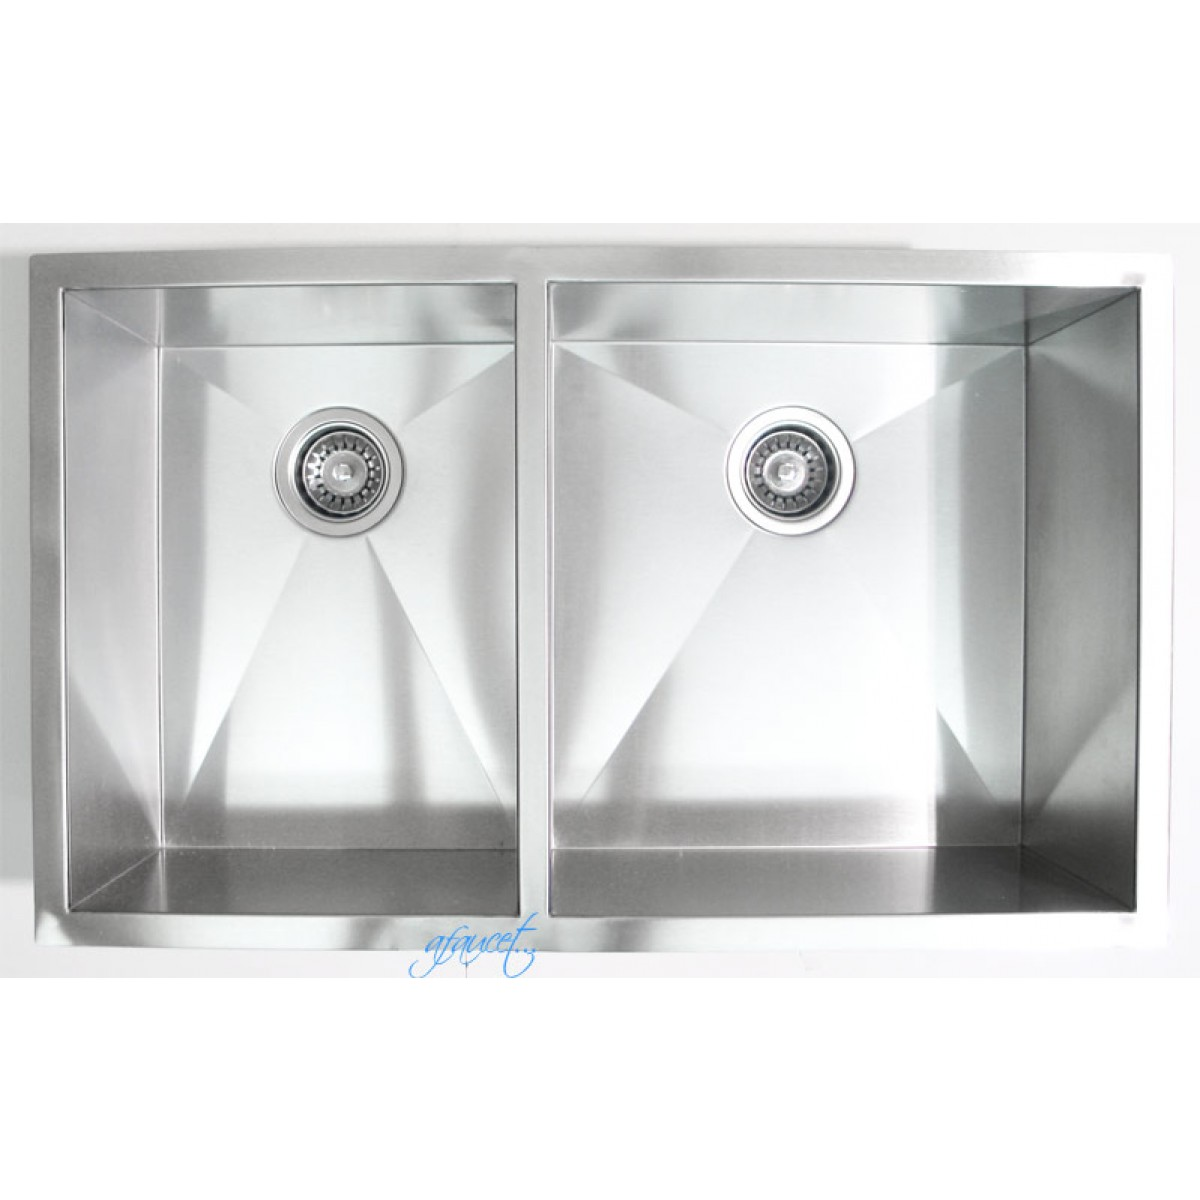 32 Inch Stainless Steel Undermount 40/60 Double Bowl Kitchen Sink ...